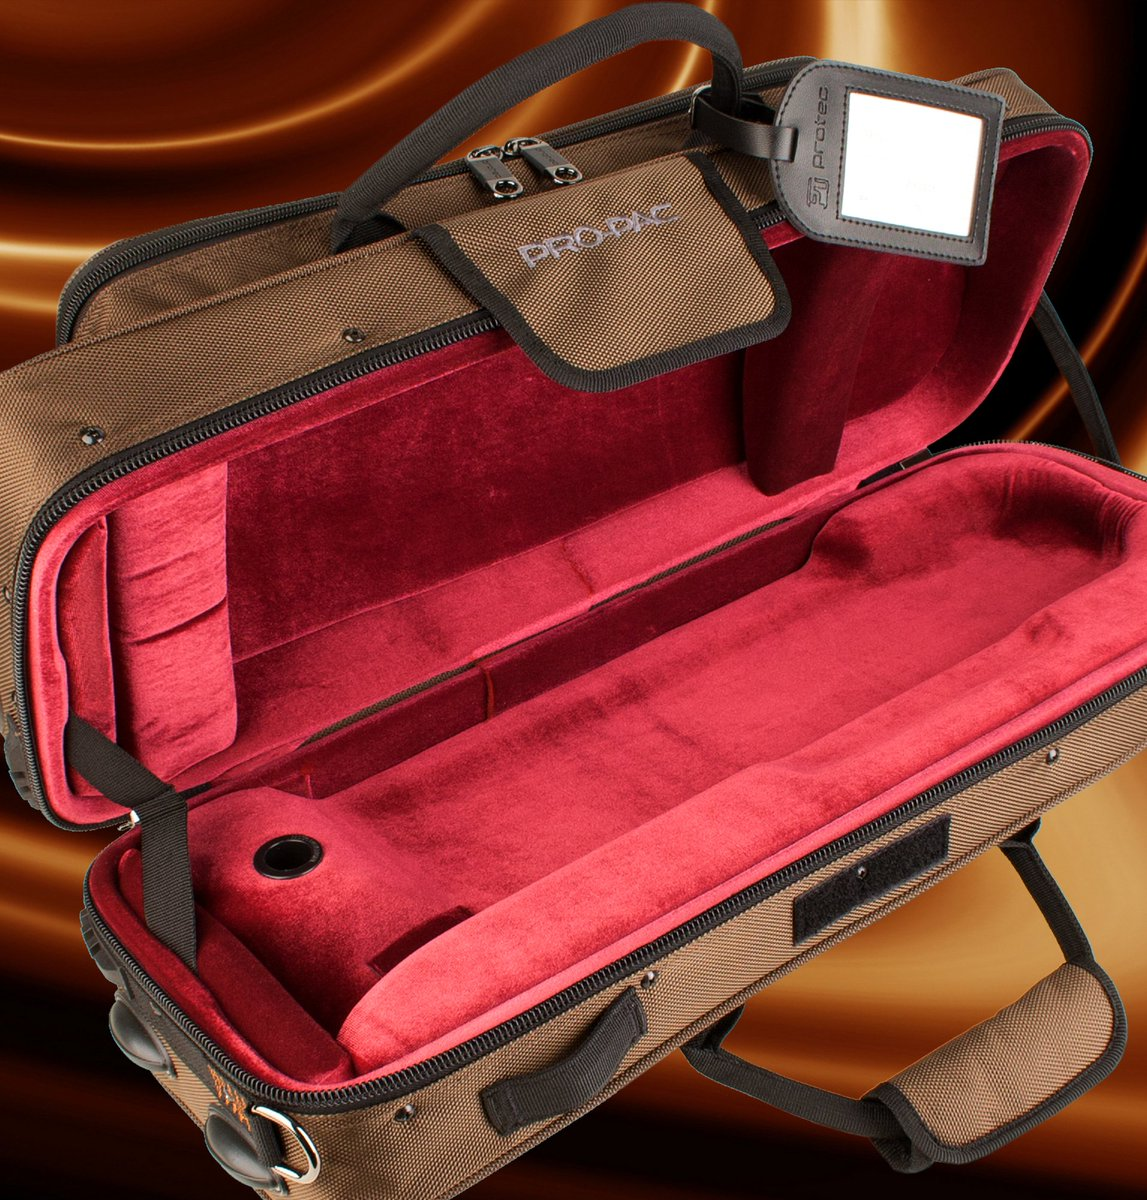 The #chocolate contoured #trumpet PRO PAC #case is back! #Beautiful #wine colored interior & #lightweight wood-shell protection! #protecstyle #PROPAC